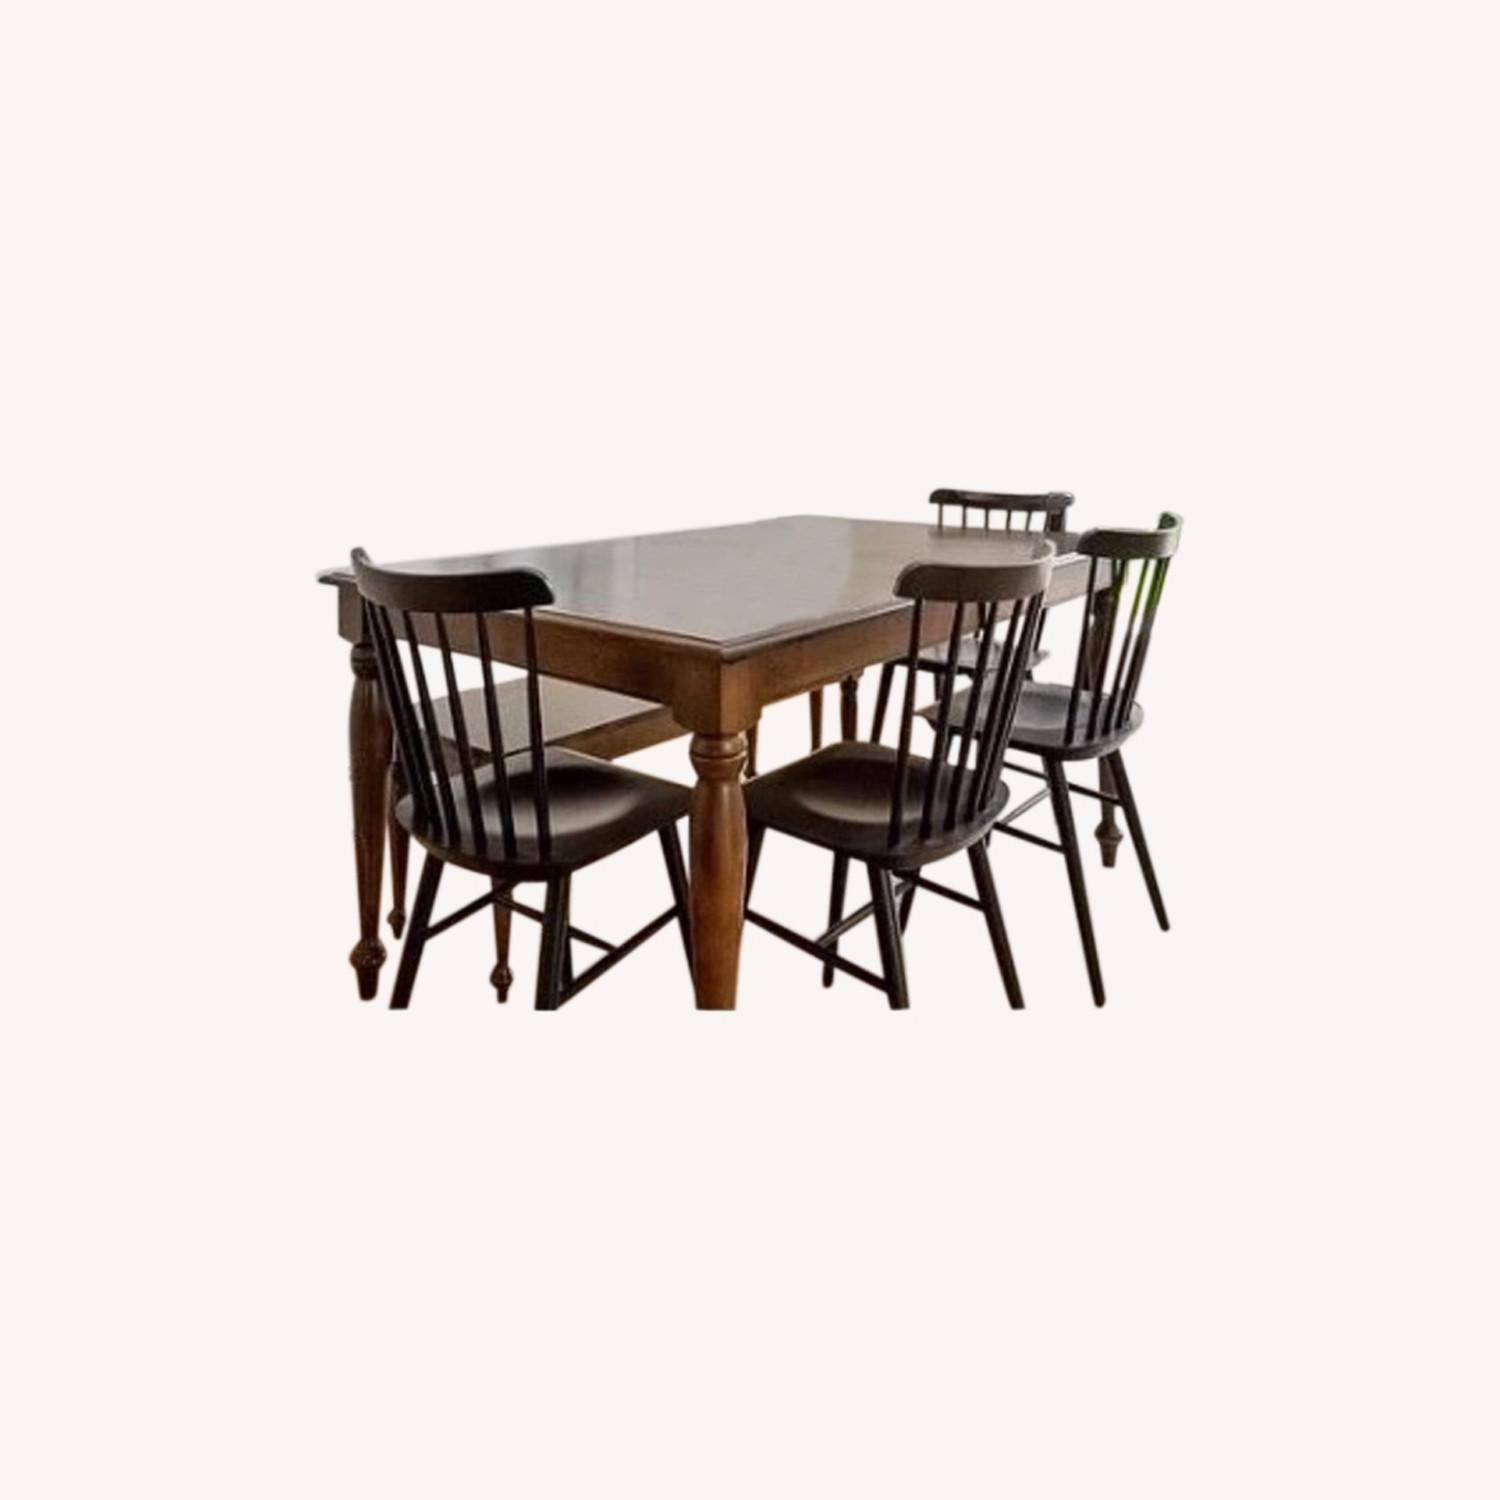 Canadel Dining Table with 2 Leaves - image-0